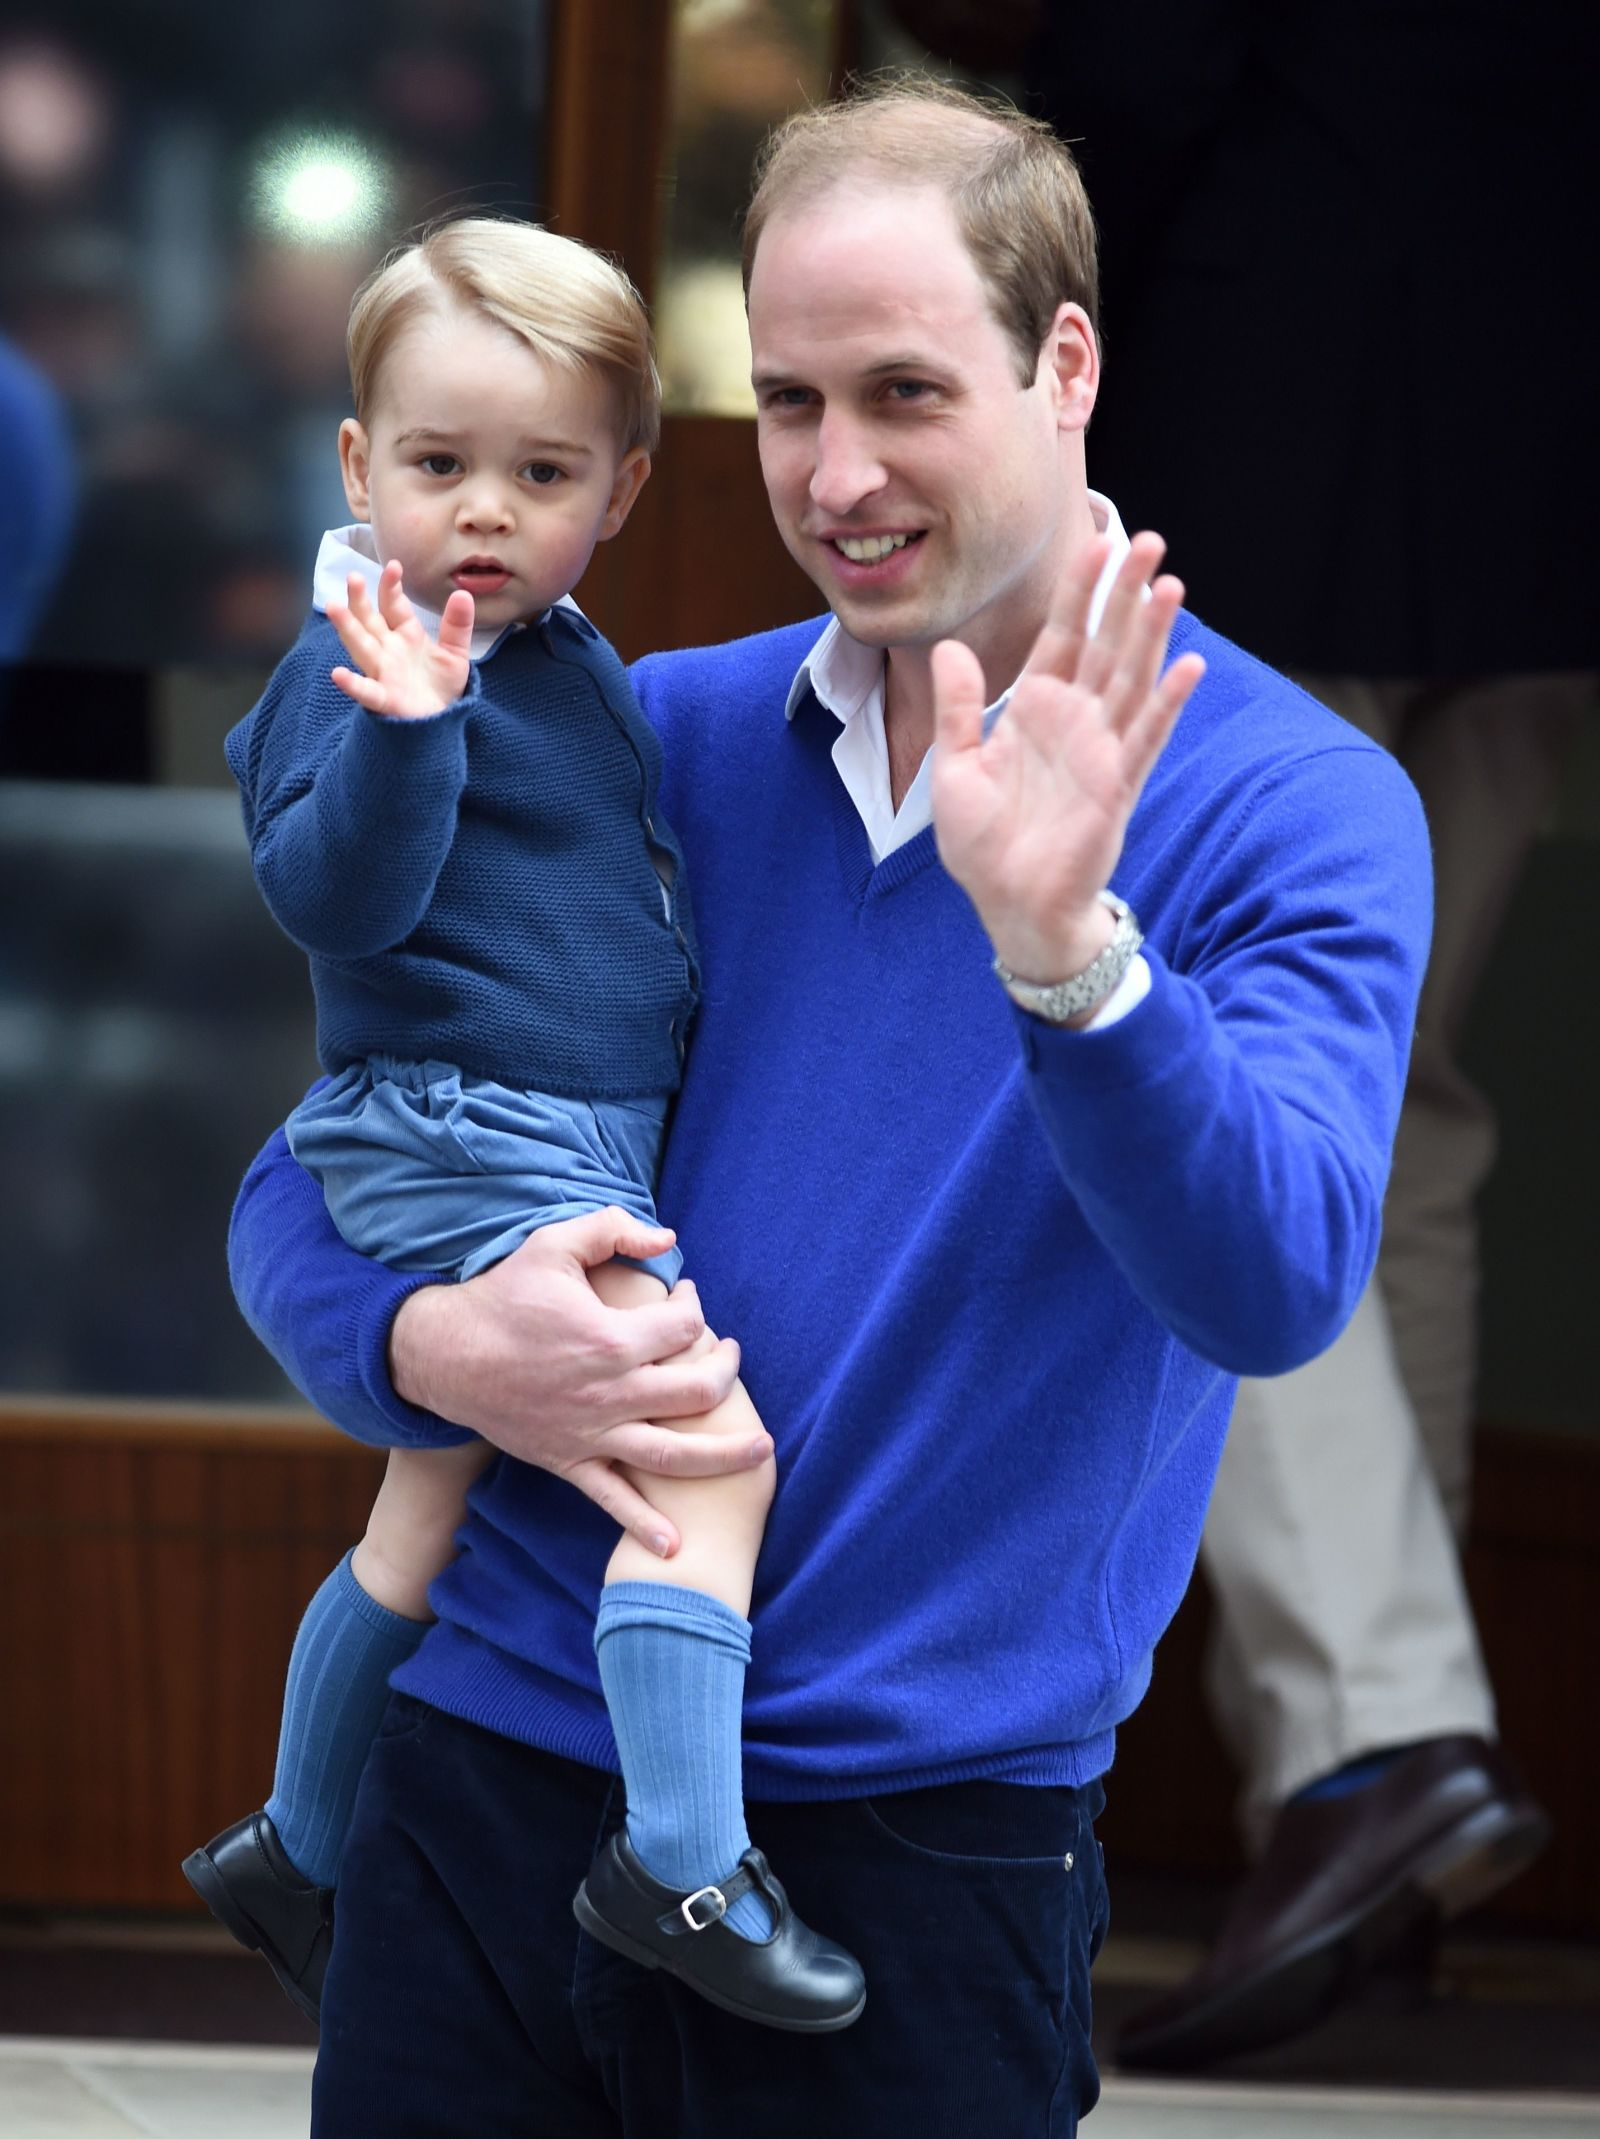 Prince William and Prince George Photo (C) GETTY IMAGES